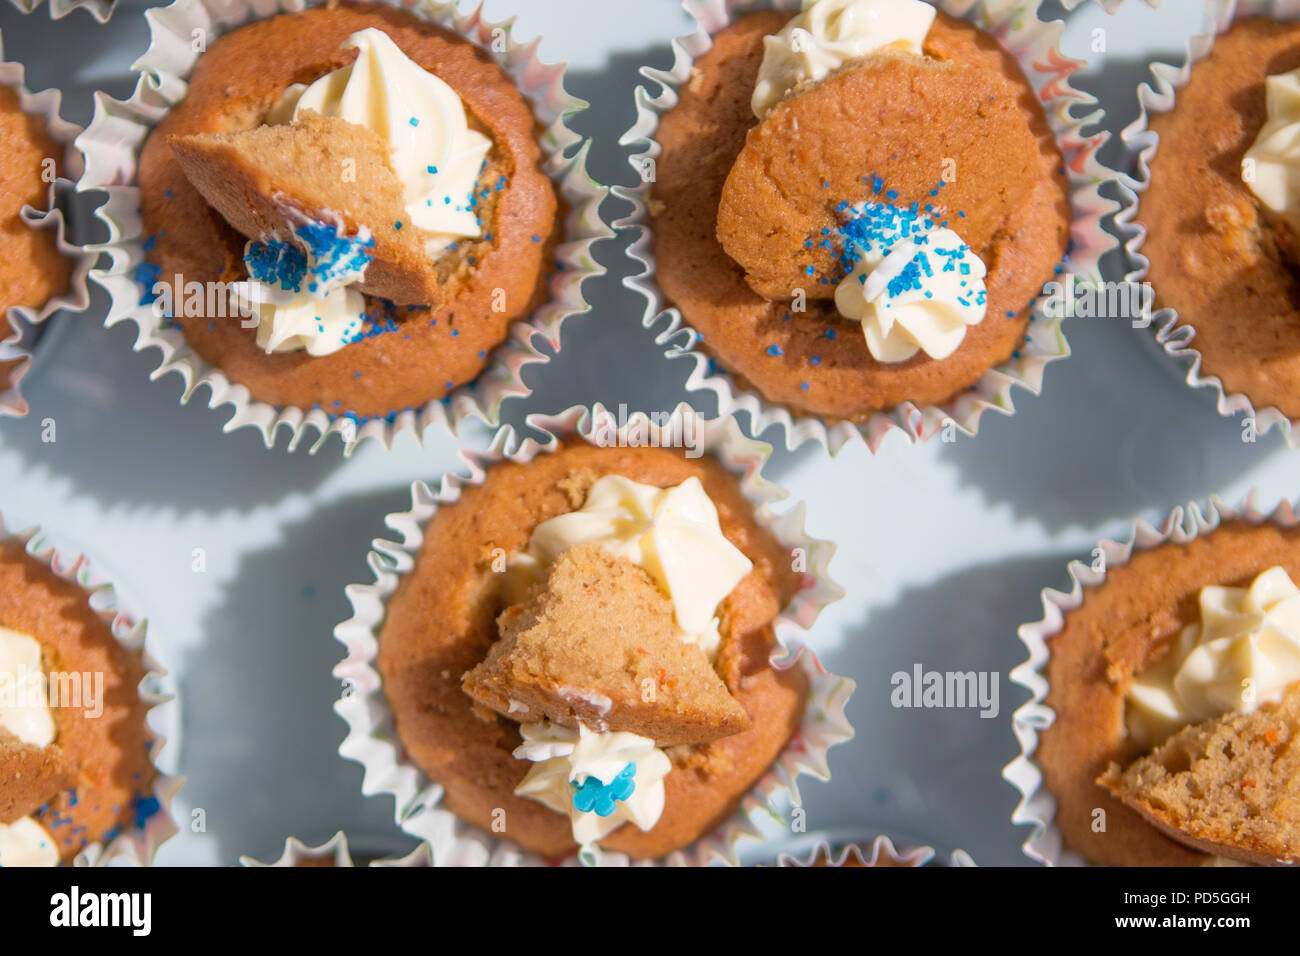 Mums homemade carrot cupcakes with cream cheese filling. Stock Photo